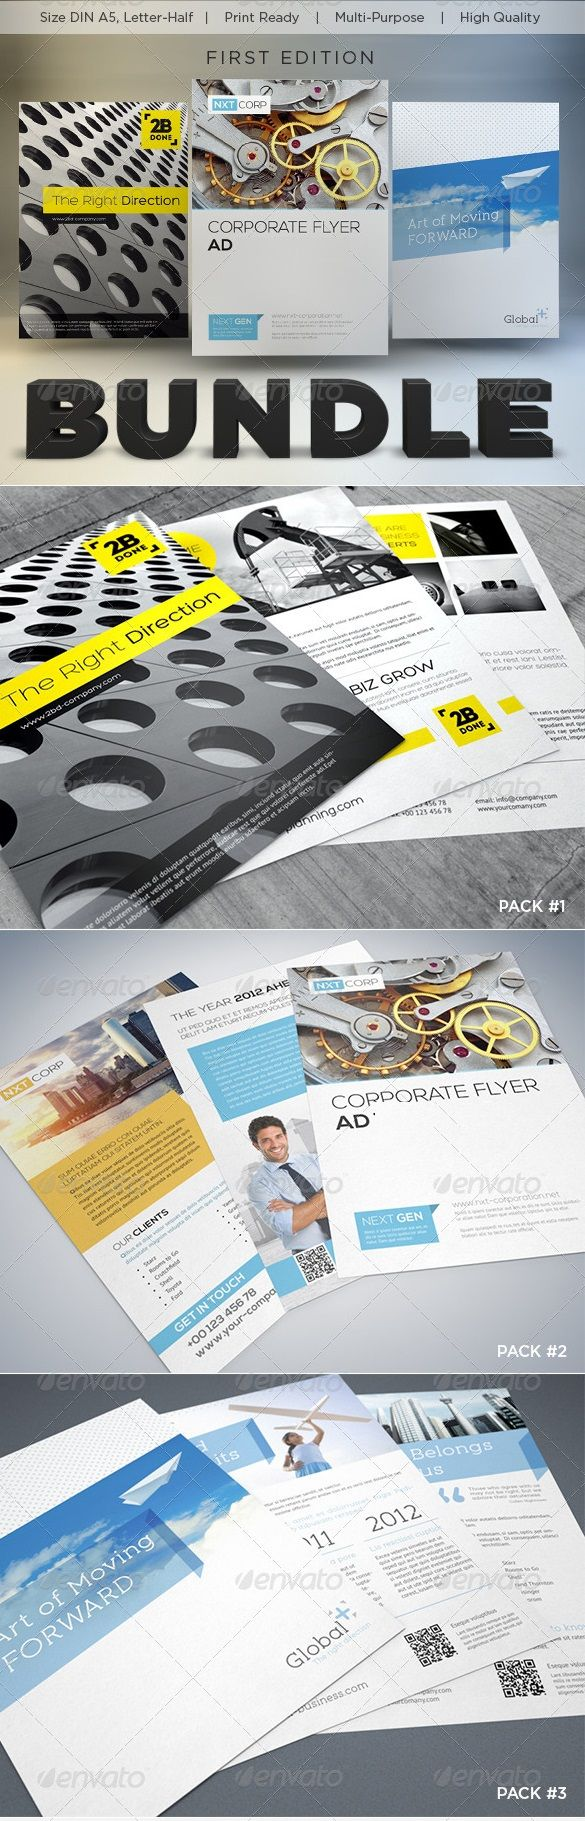 CORPORATE FLYER AD. Get it customized as per your needs in only $15.67 http://www.devloopers.com/design/flyers/corporate-flyers/corporate-flyer-ad